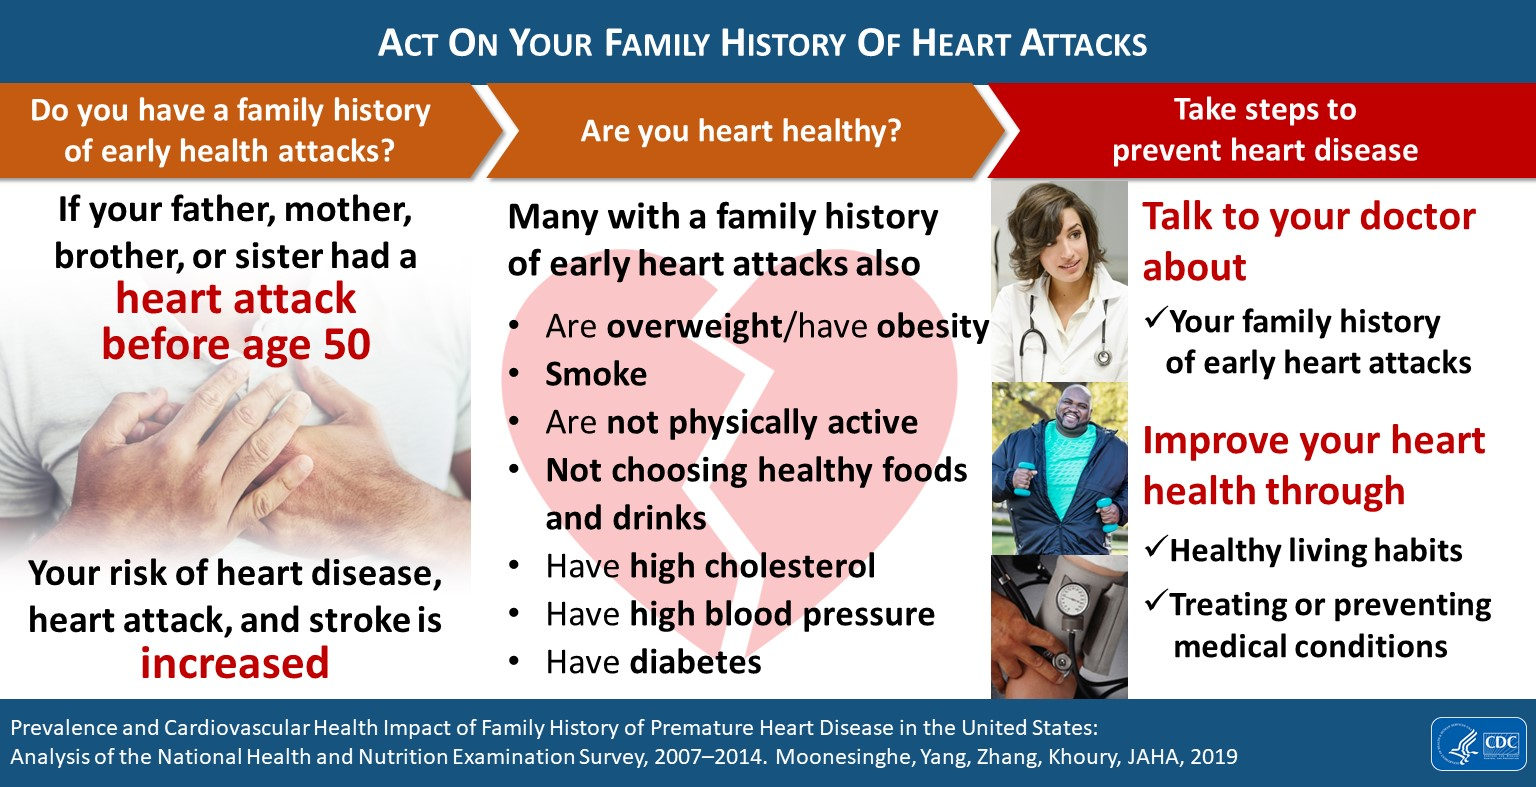 Act On Your Family History Of Heart Attacks